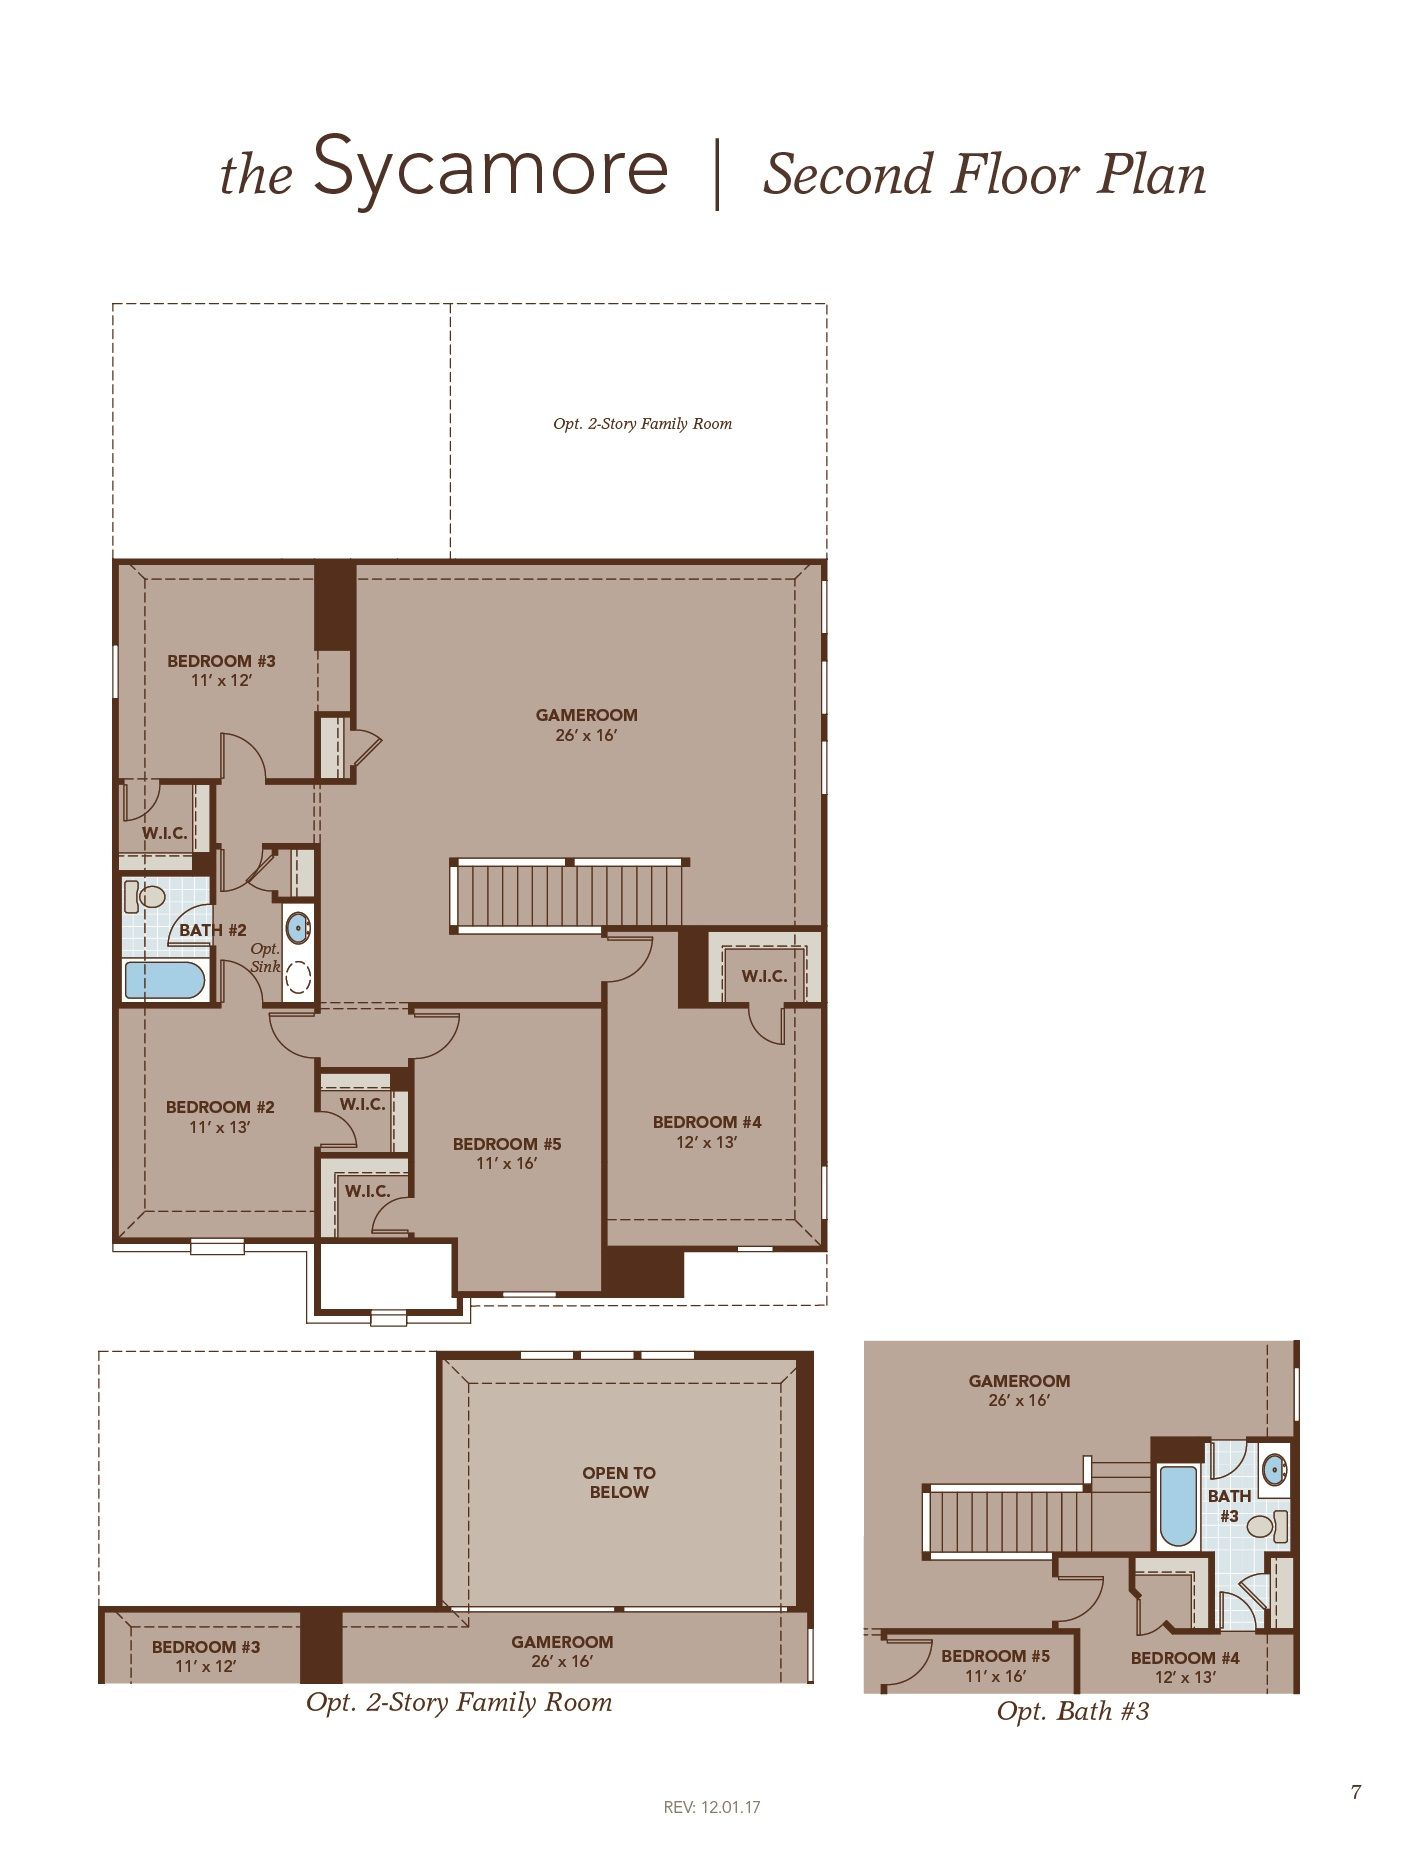 Sycamore Second Floor Plan